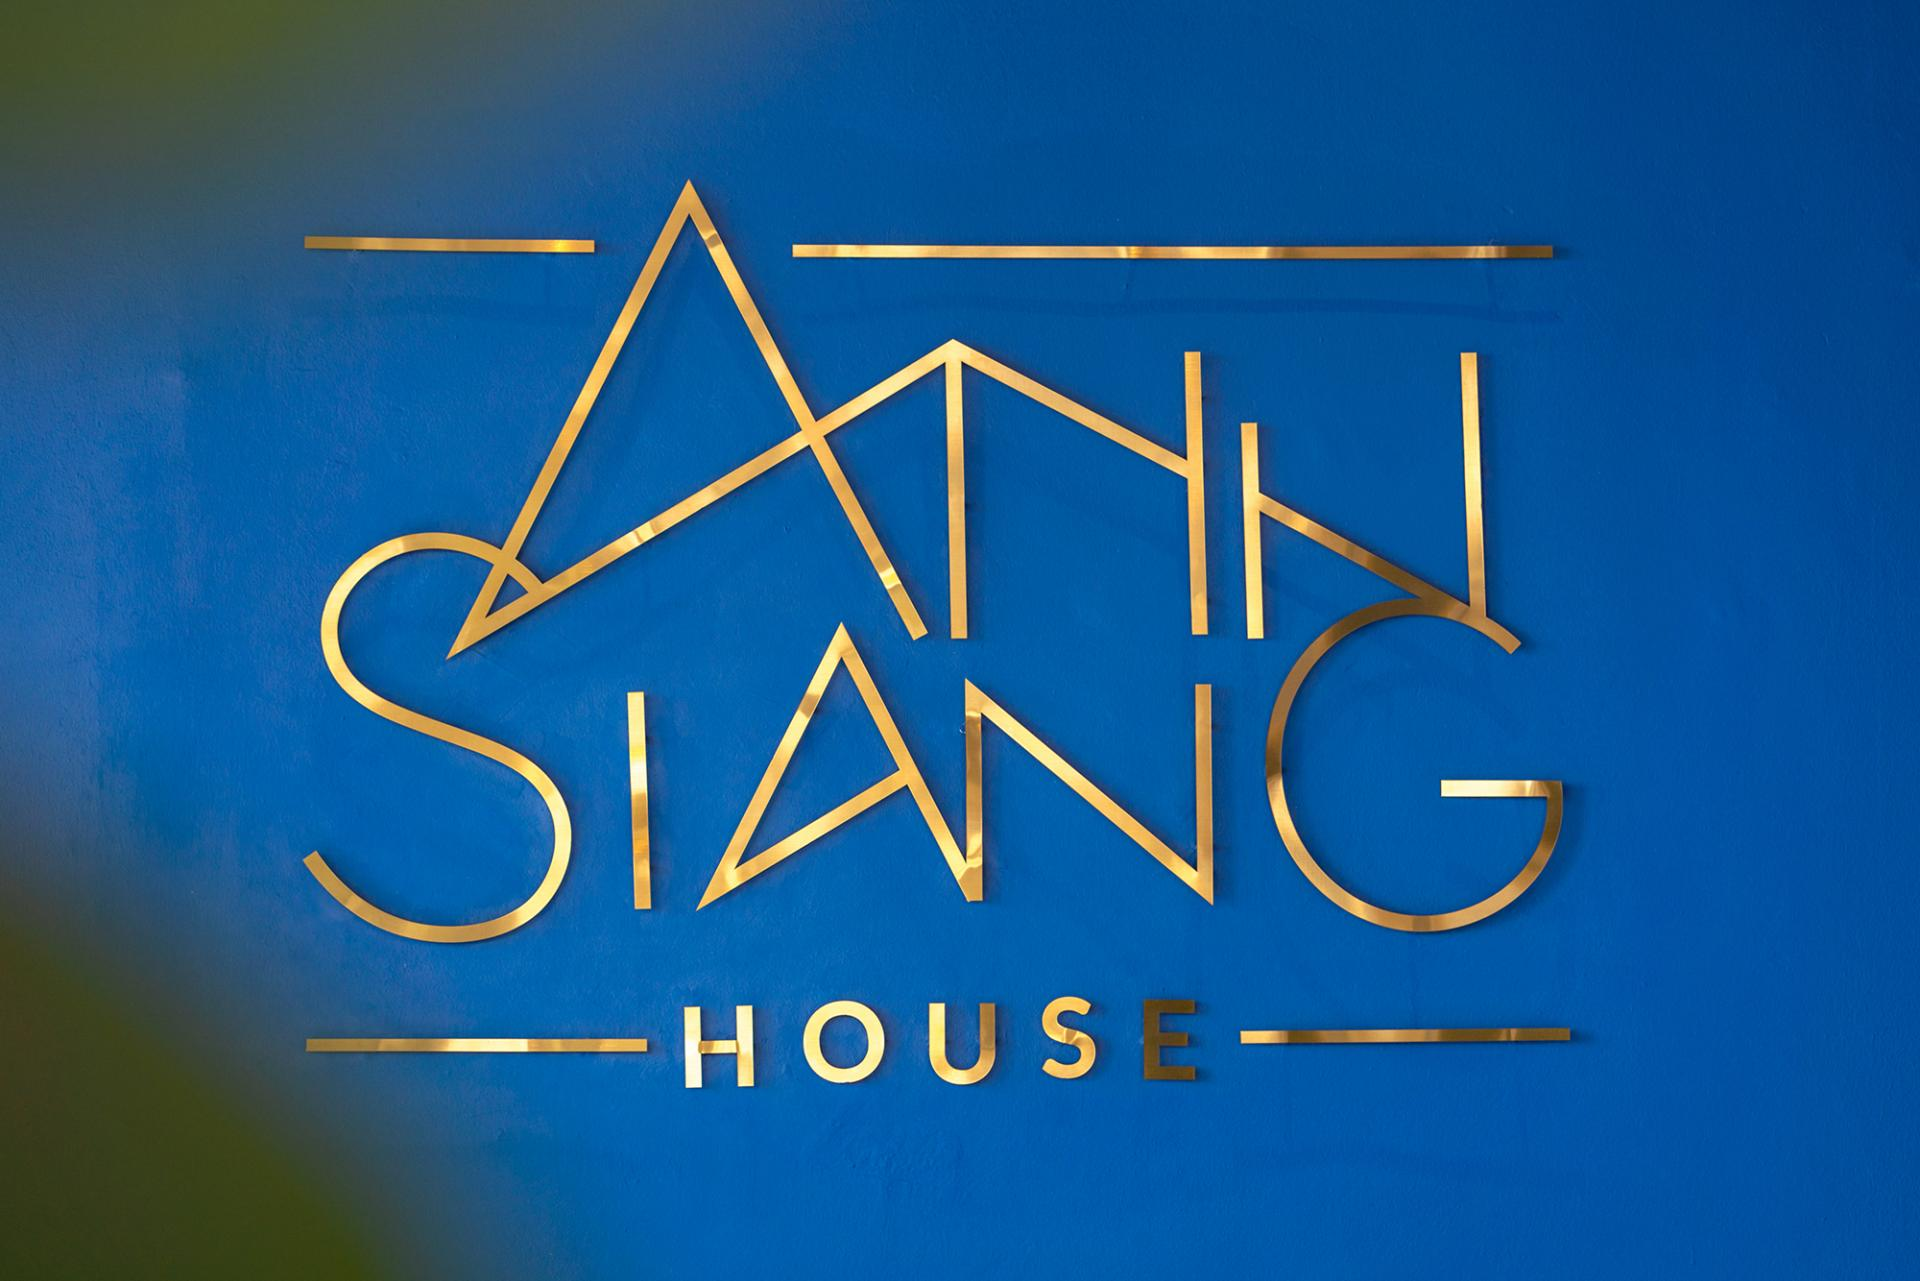 Complete review of Ann Siang House.